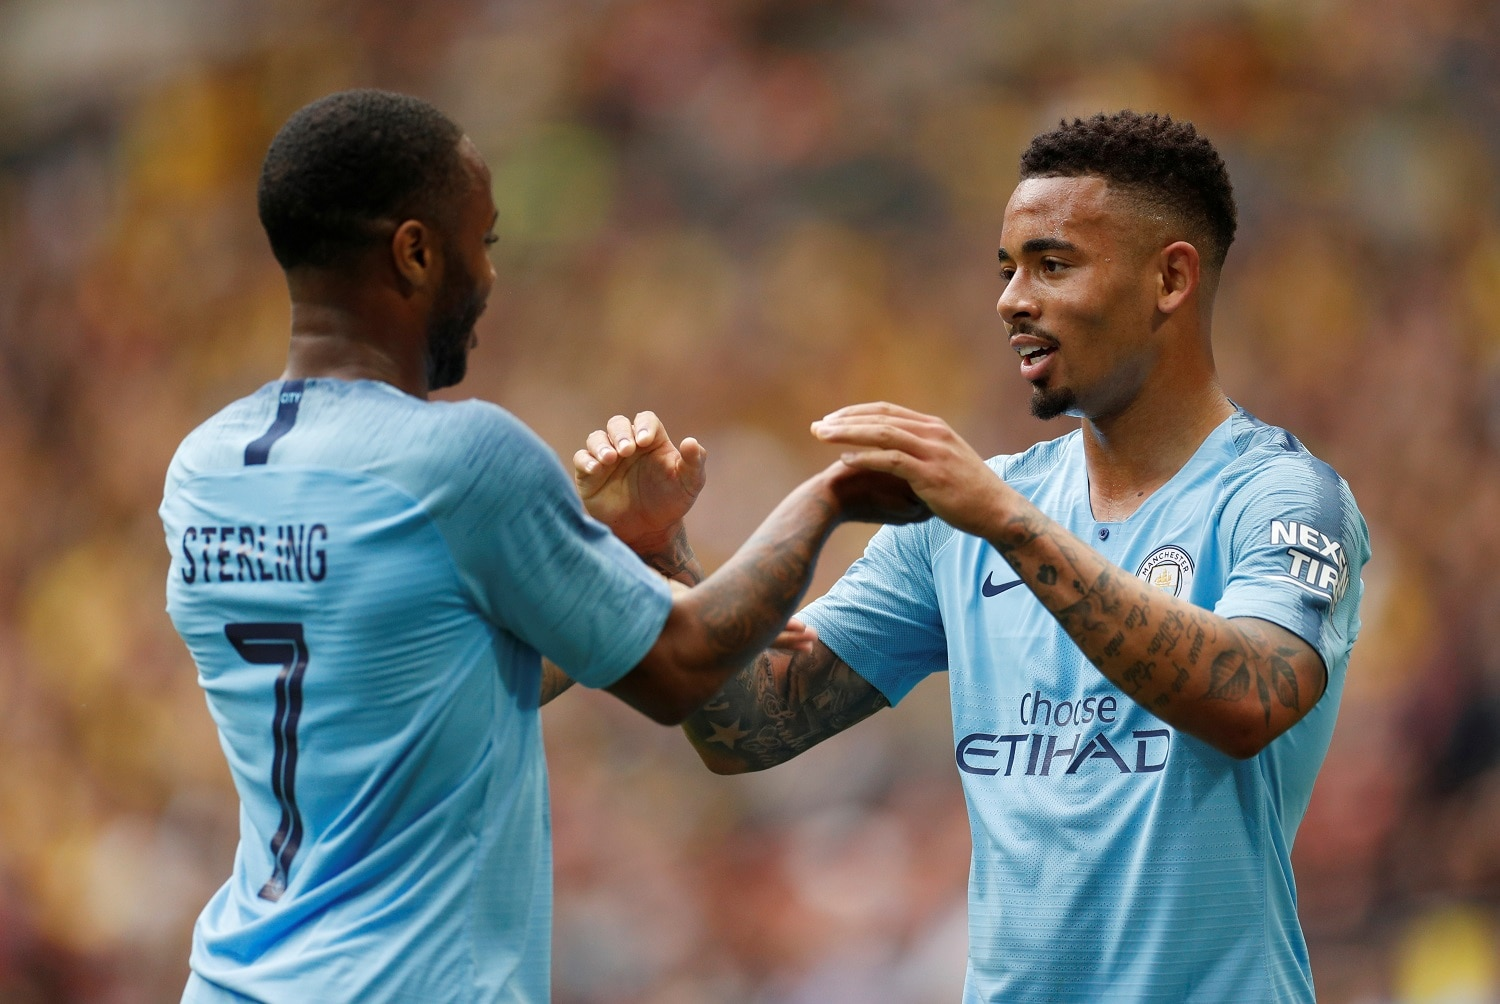 Soccer Football - FA Cup Final - Manchester City v Watford - Wembley Stadium, London, Britain - May 18, 2019 Manchester City's Gabriel Jesus celebrates scoring their fourth goal with Raheem Sterling Action Images via Reuters/John Sibley